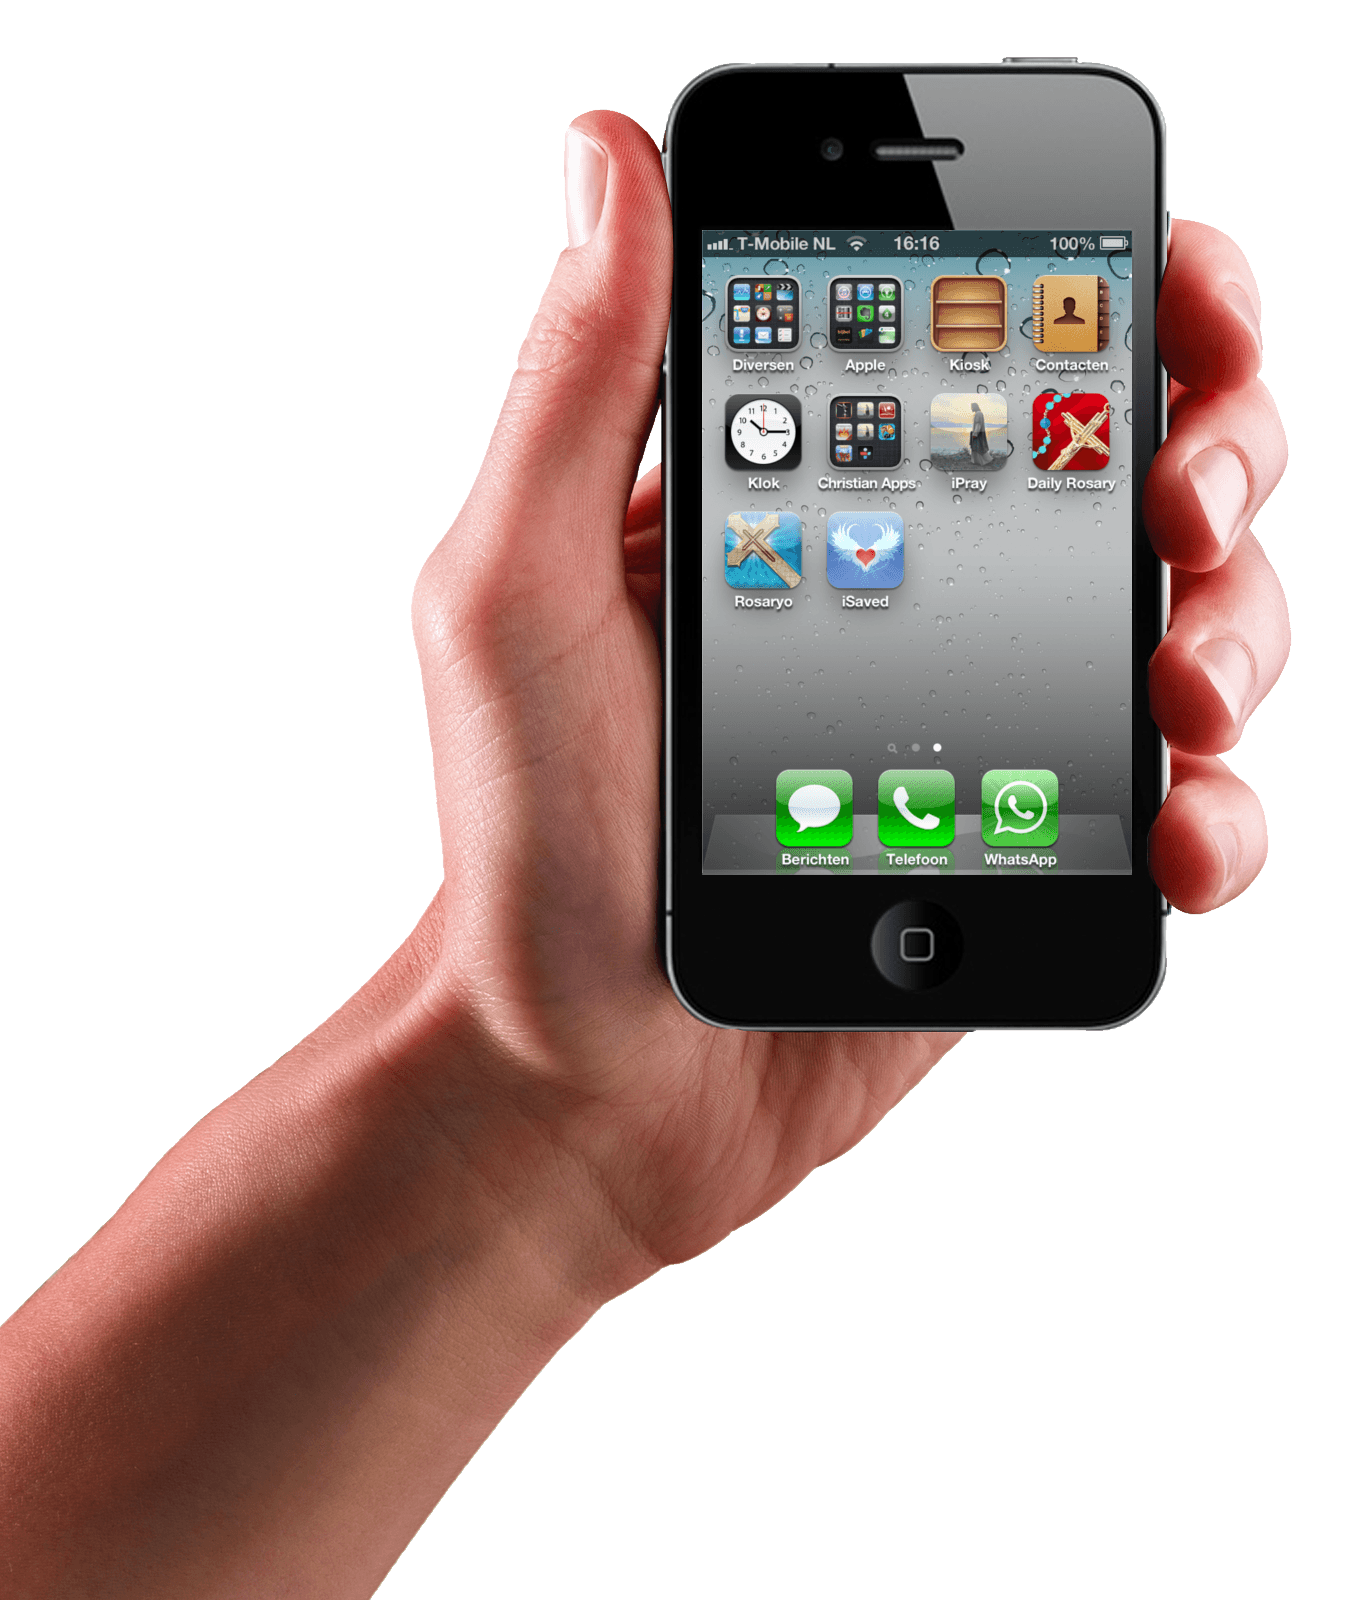 Iphone In Hand Transparent Png Image PNG Image